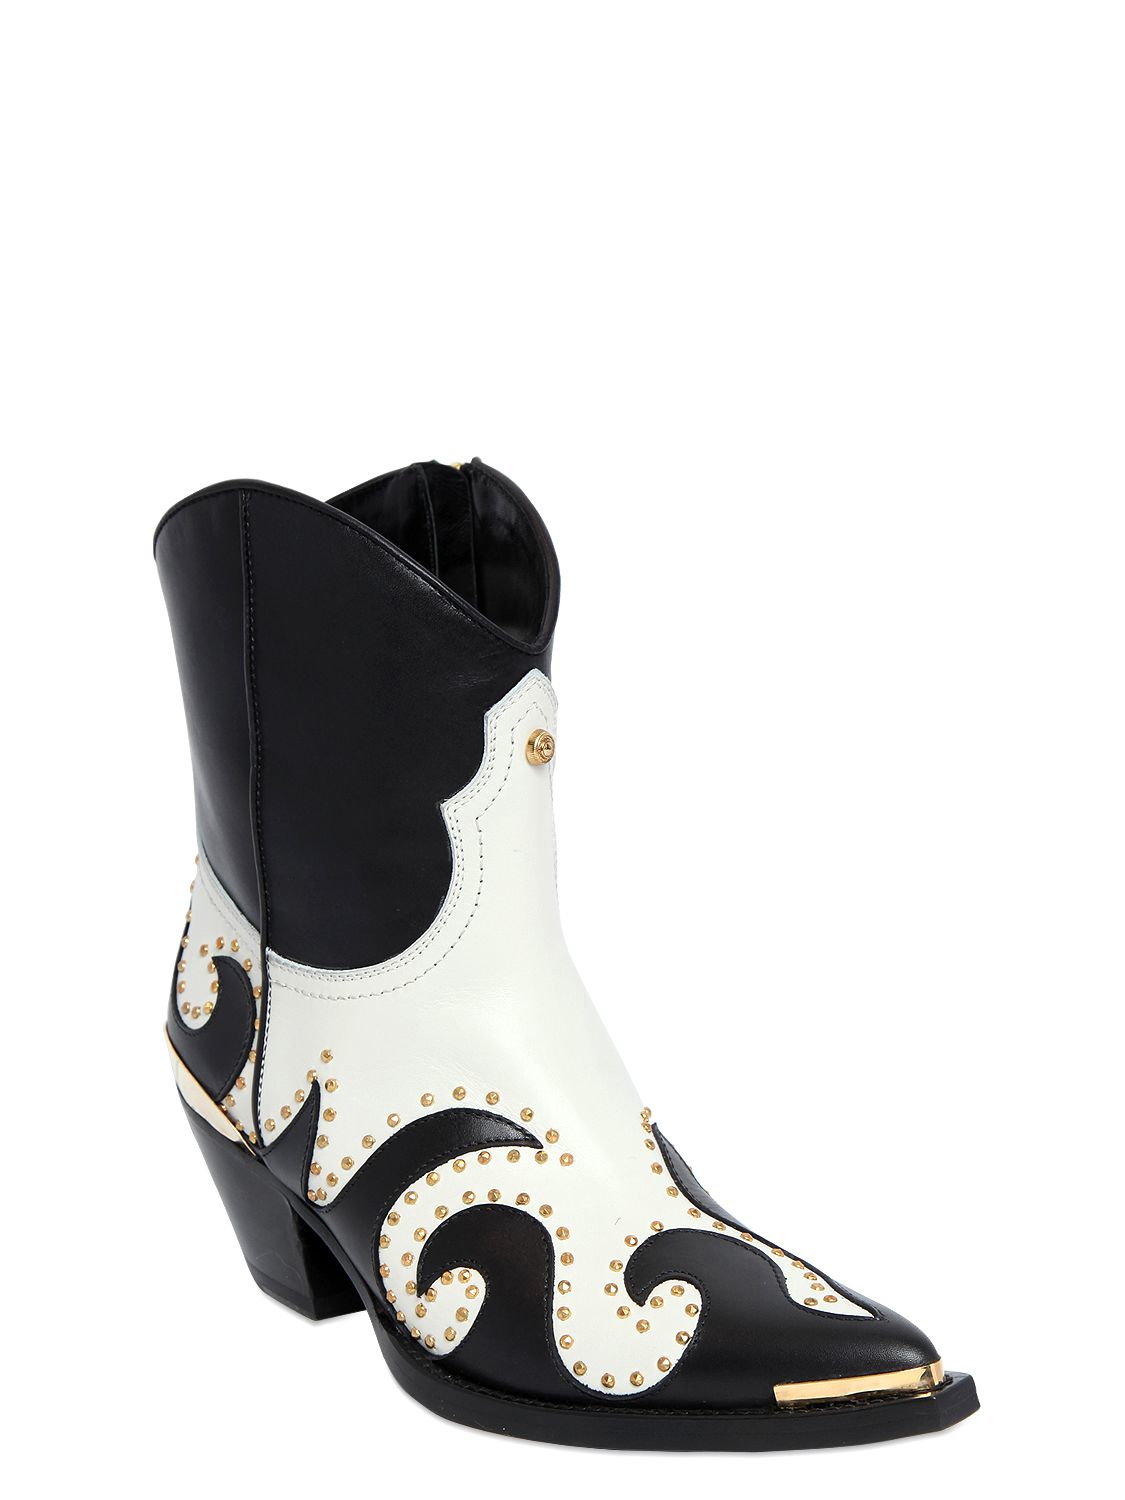 Fausto Puglisi 55mm Studded Leather Cowboy Boots in Black/White (White)